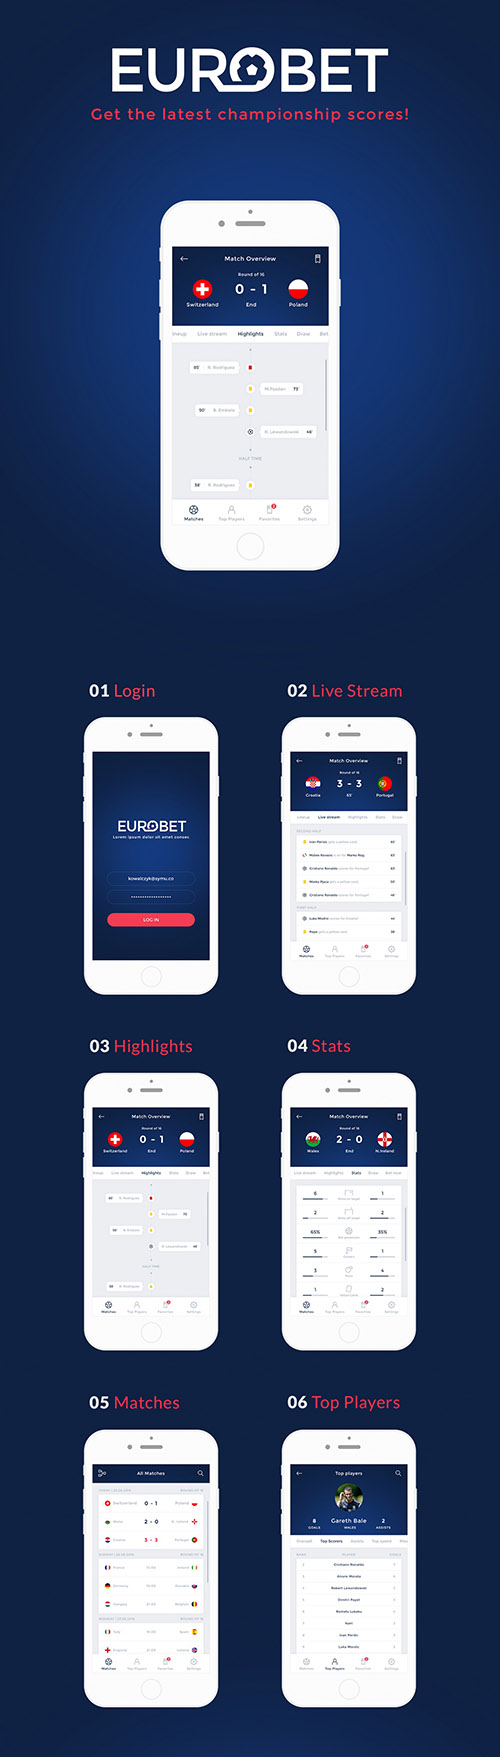 PSD Web Design - Eurobet Mobile App